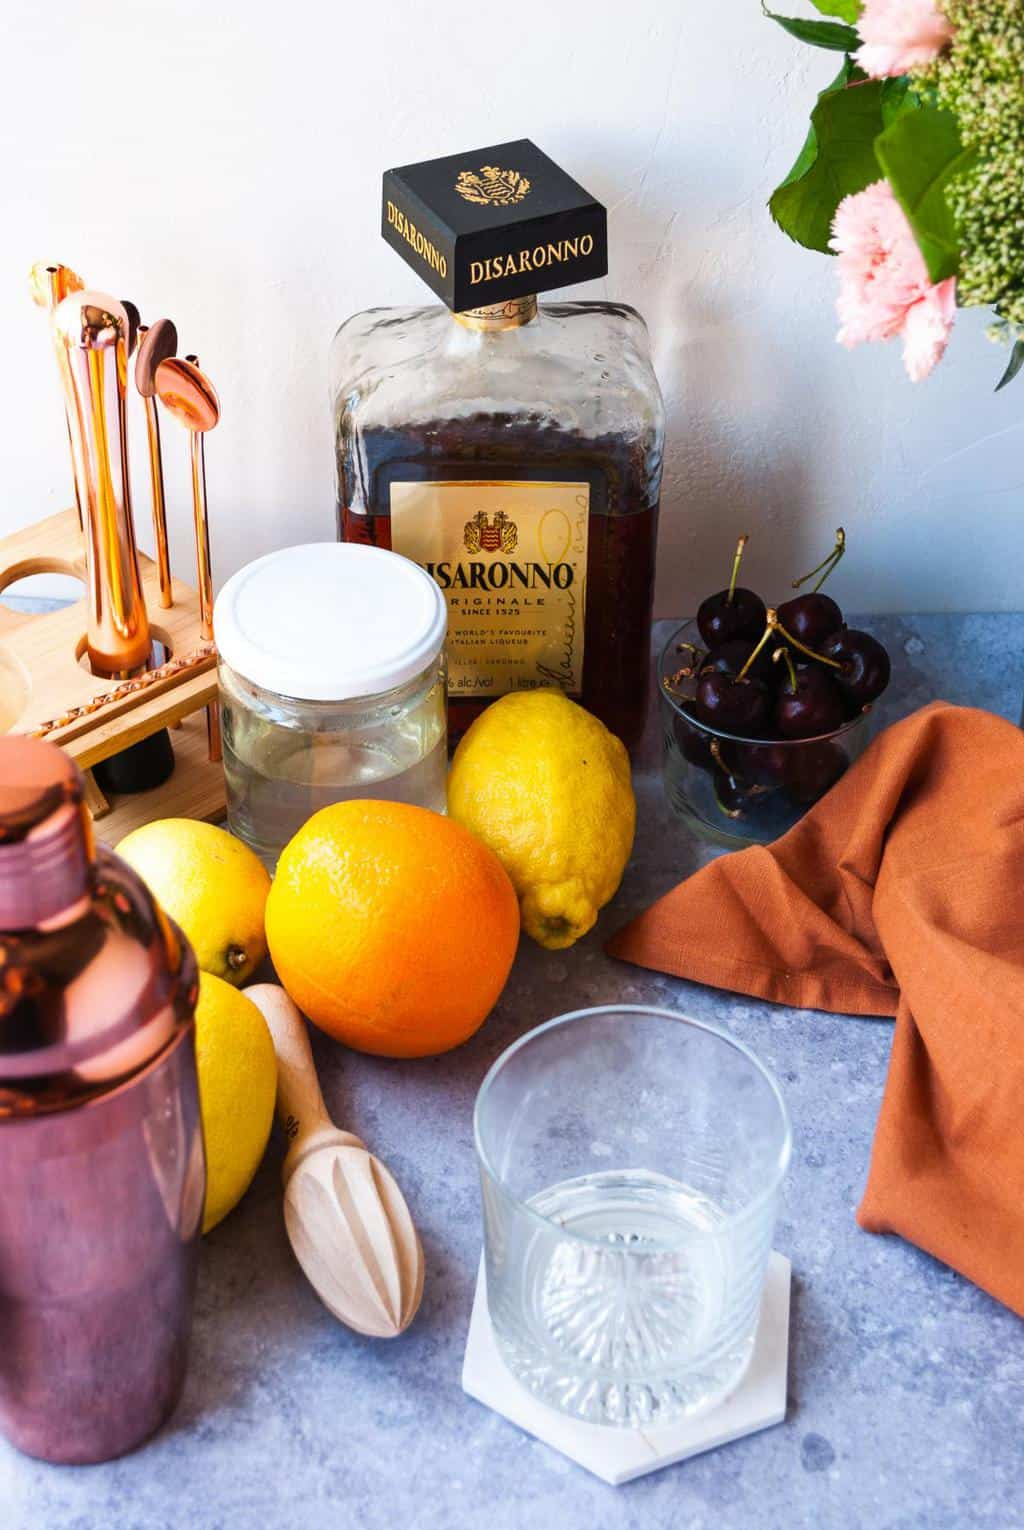 What's in an Amaretto Sour - A photo of all the tools and ingredients to make the drink.